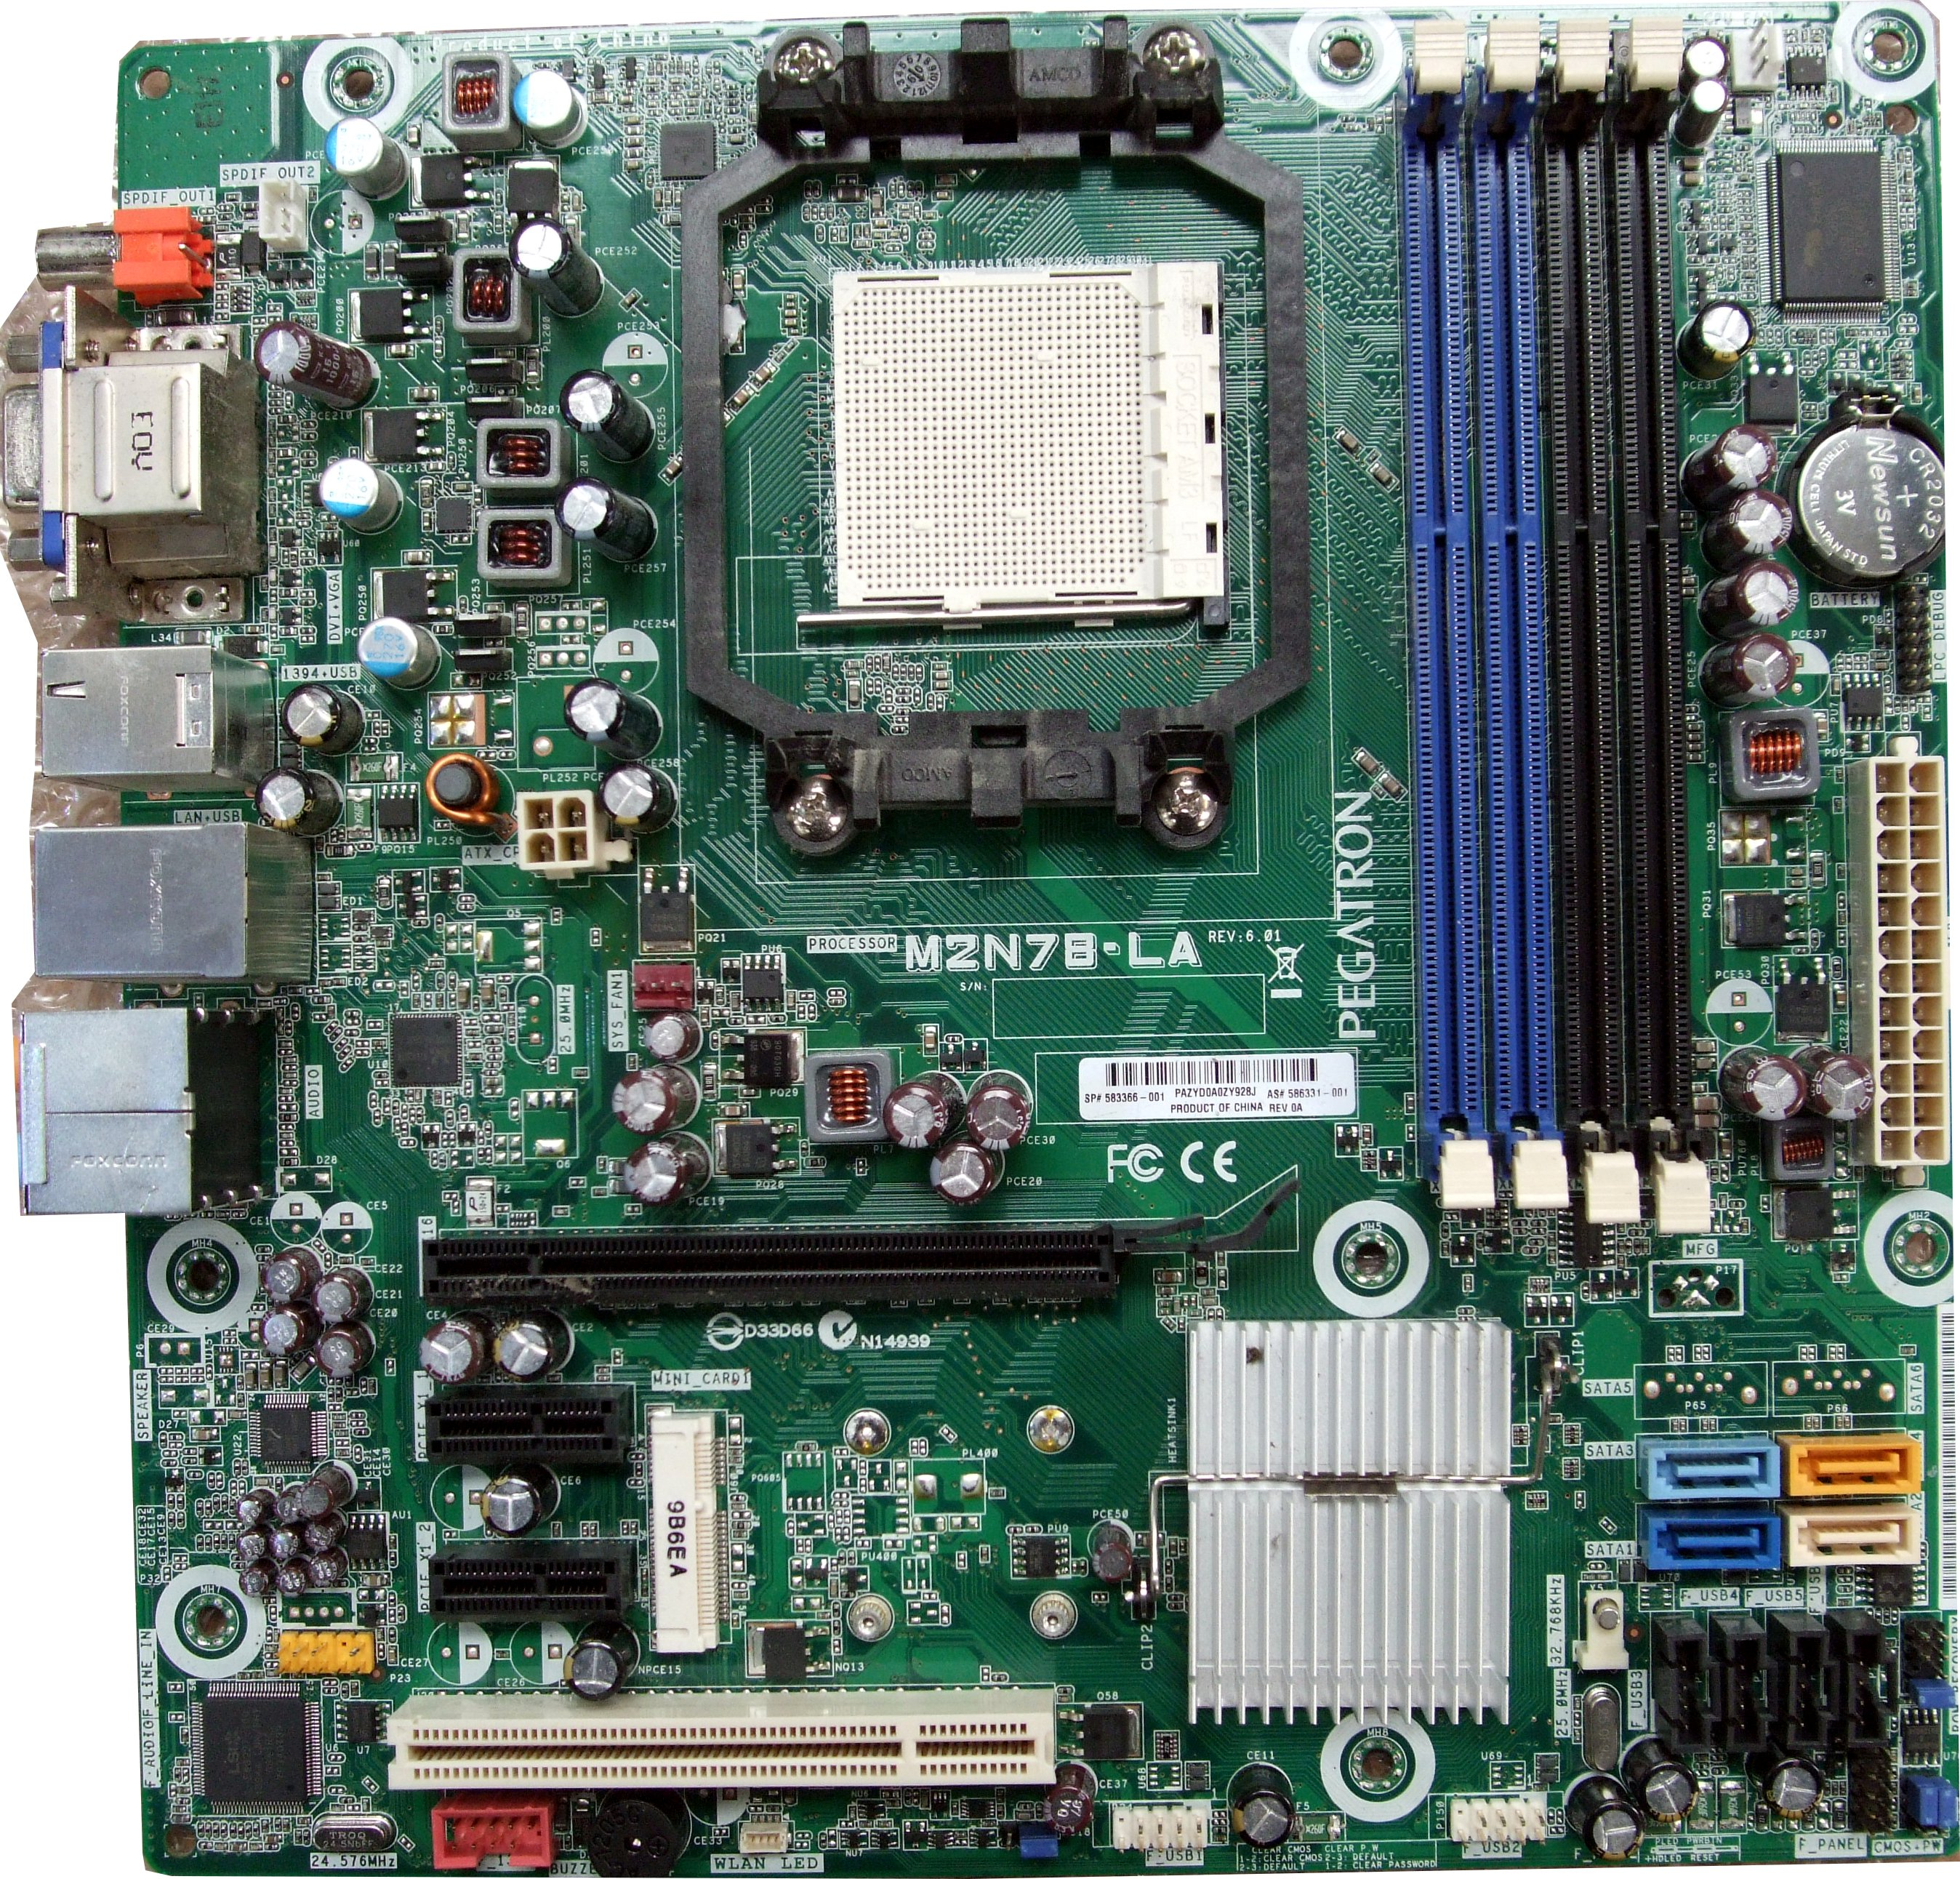 M2N78-LA HP Pegatron Socket AM3 Motherboard - P/N 573400-001